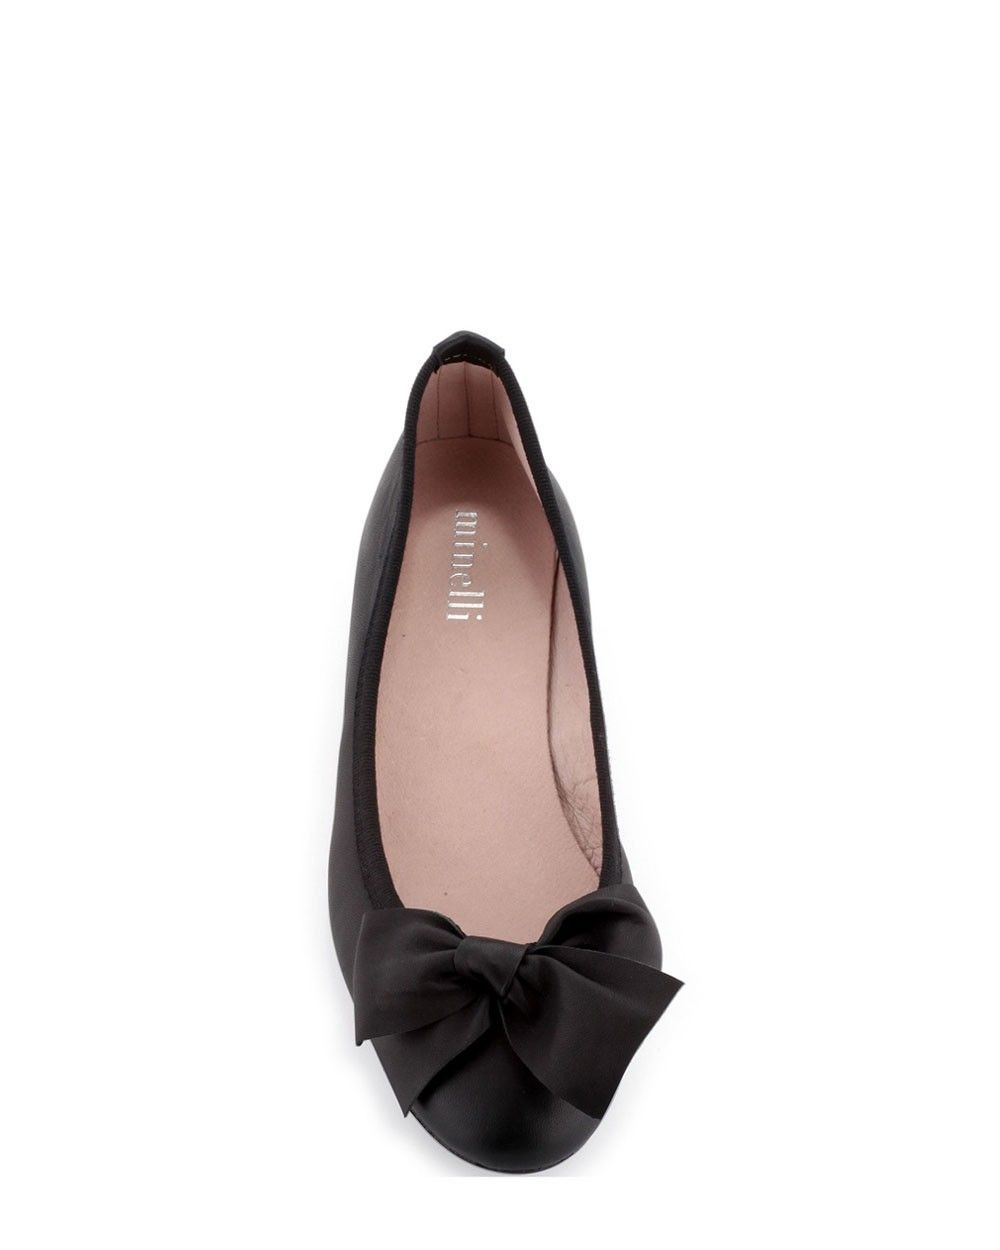 7f058c191c52d1 Minelli Ballerine - Chaussures Femme Automne Hiver 79€ Minelli, Slippers,  Bow Flats,